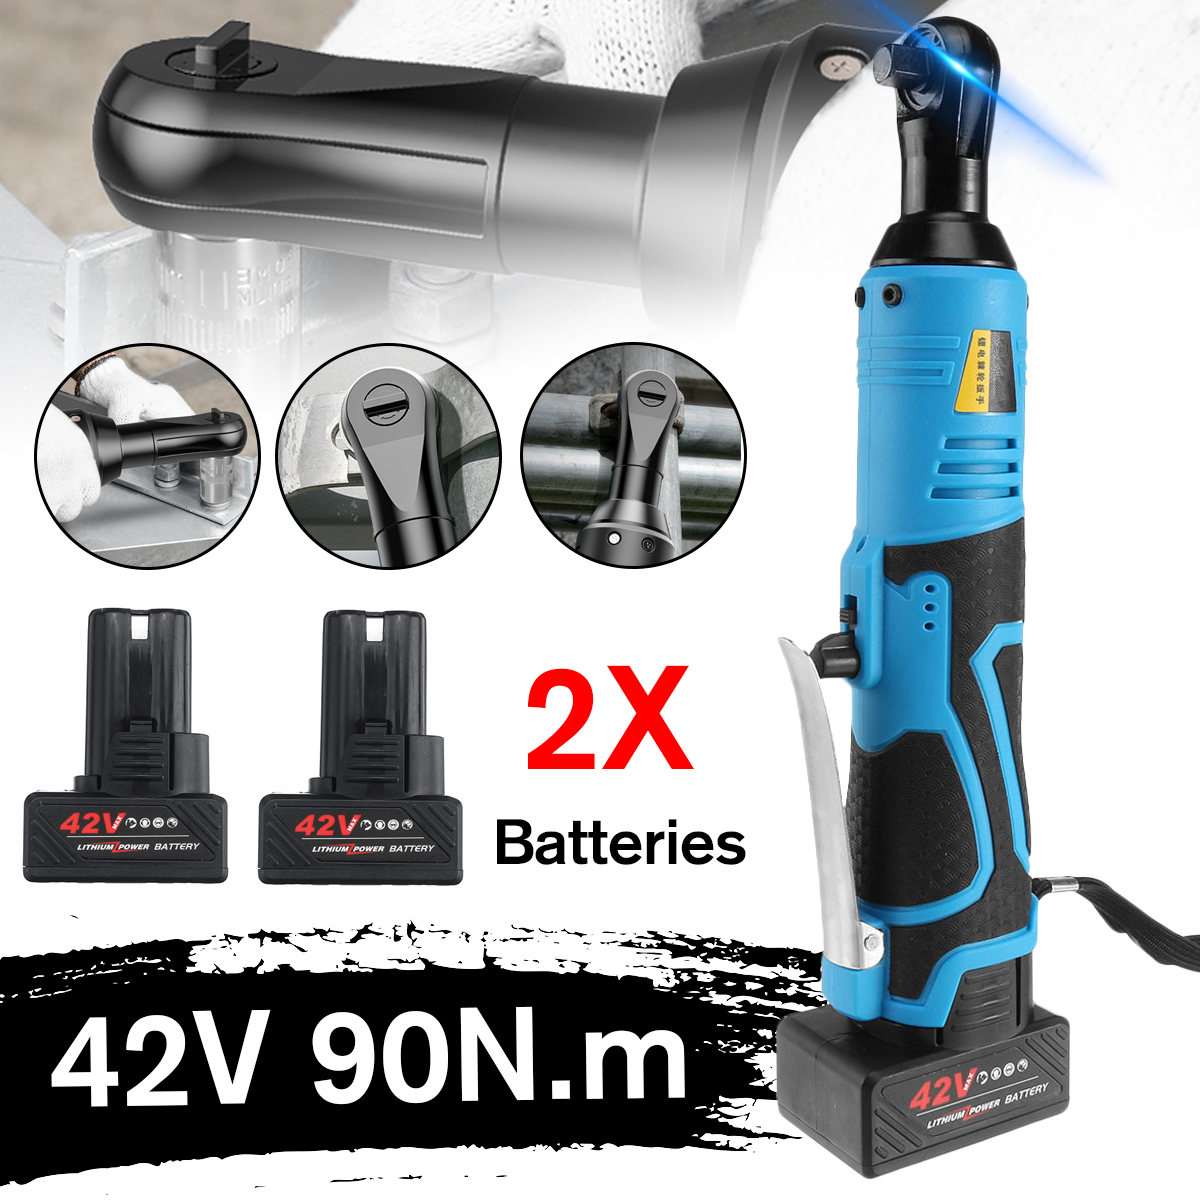 12V 4500mAh 60N.m 3//8 inch Right Angle Cordless Electric Ratchet Wrench with Charger Rechargeable Ratchet Wrench Power Tools Set